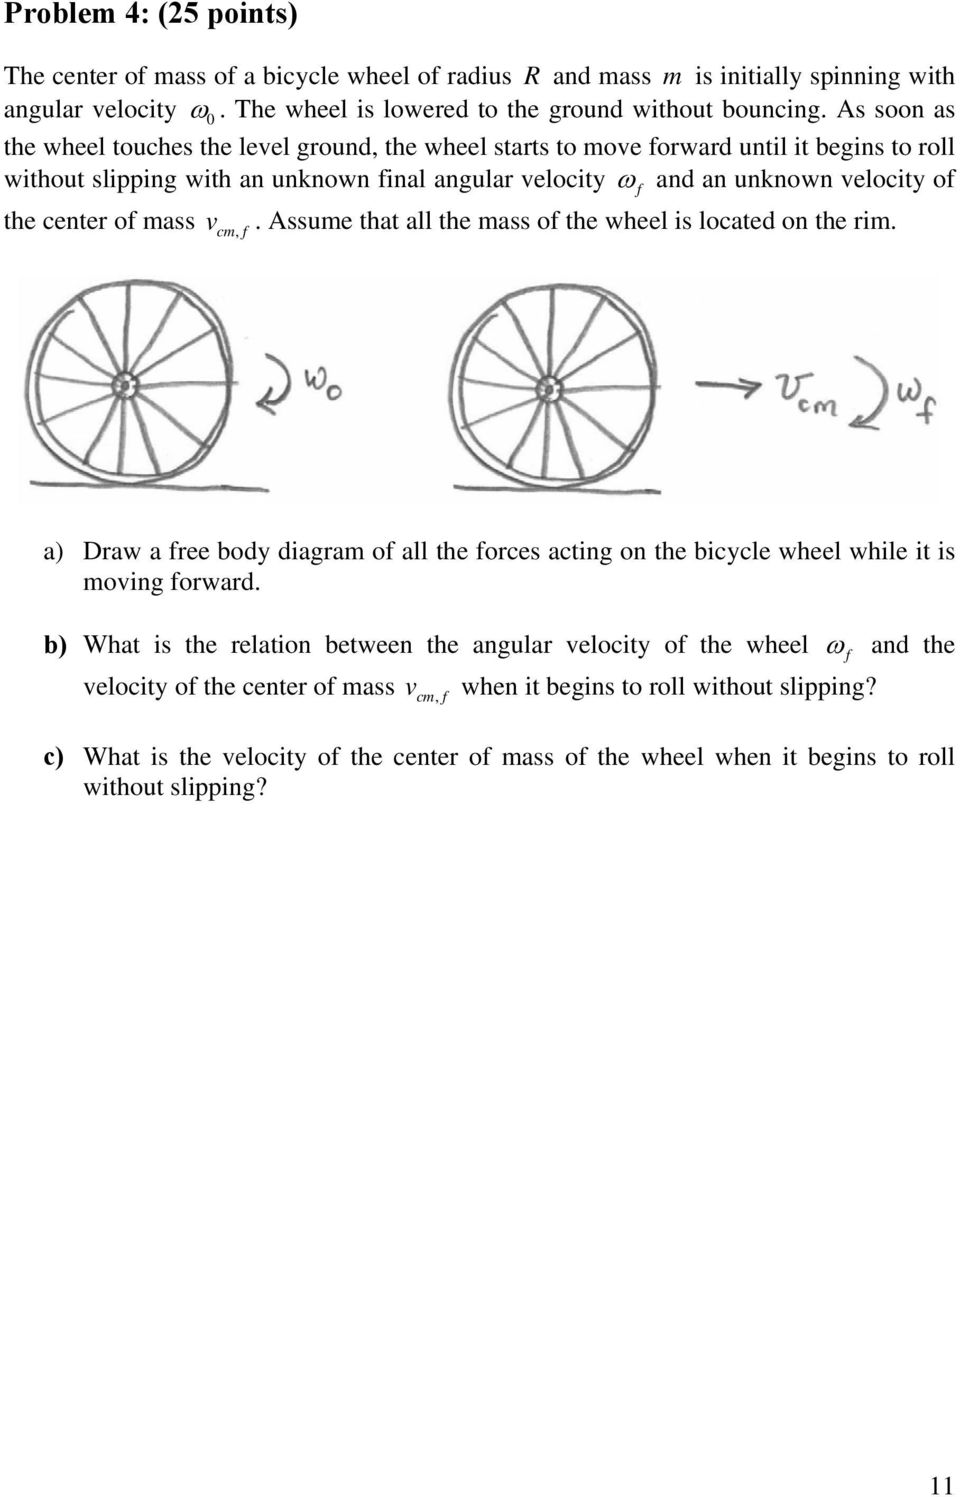 mass v f. Assume that all the mass of the wheel is located on the im., a) Daw a fee body diagam of all the foces acting on the bicycle wheel while it is moving fowad.